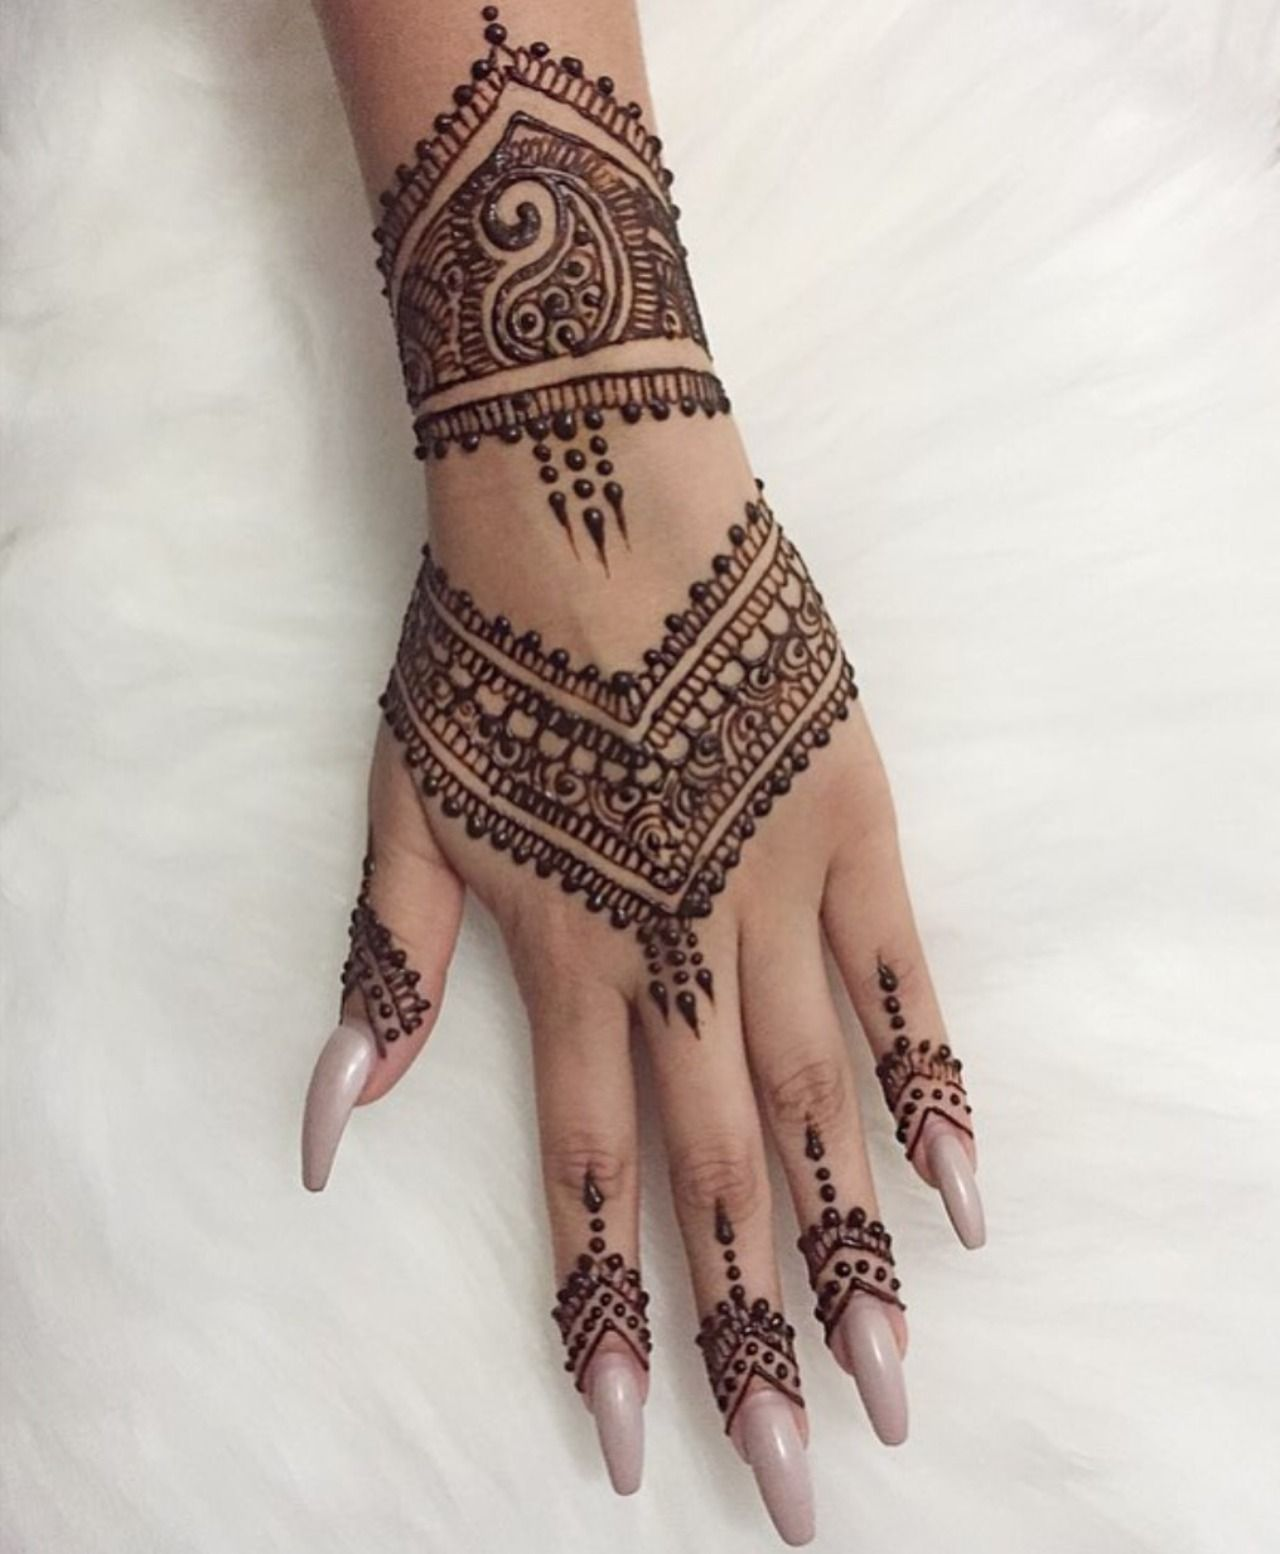 Inflicting Ink Tattoo Henna Themed Tattoos: Henna Tattoo Designs, Henna Tattoo Hand